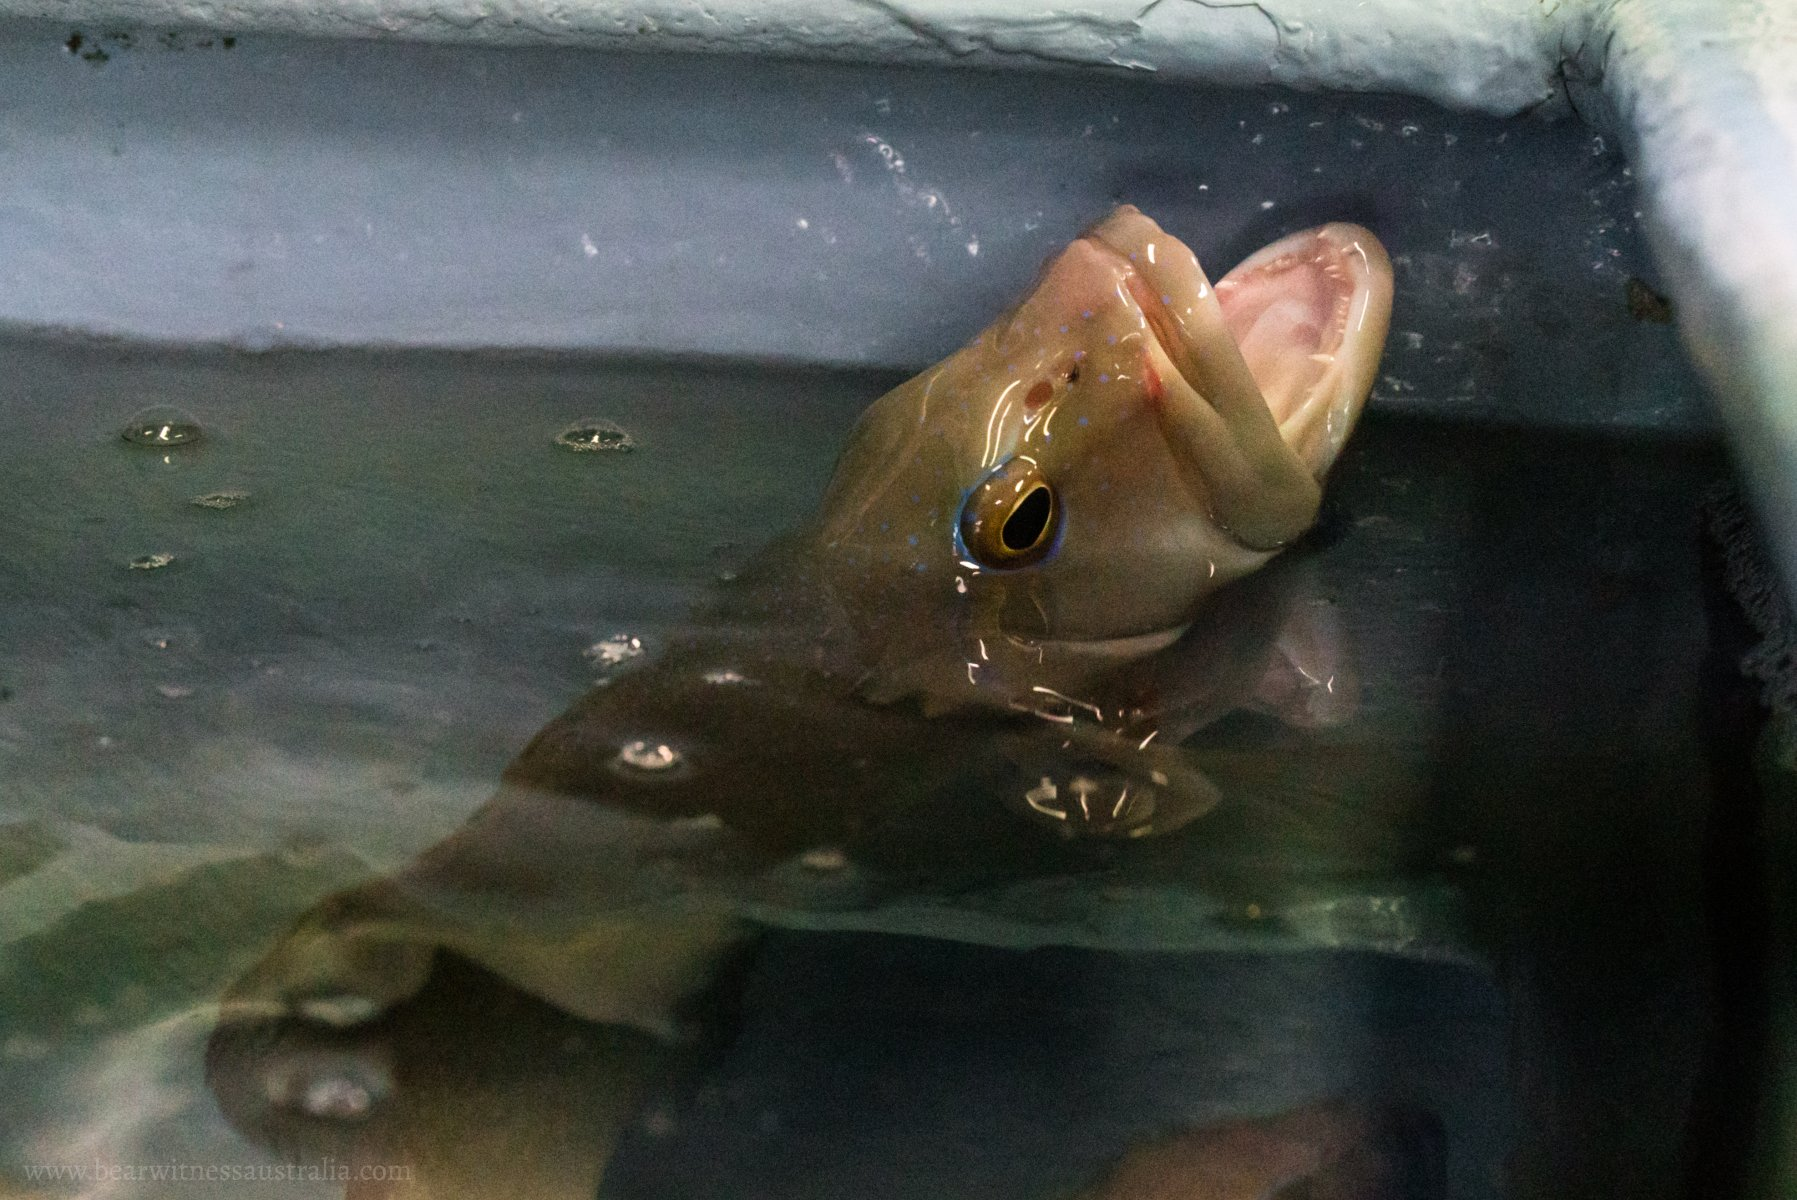 A photo of a fish at a live seafood store in Victoria.